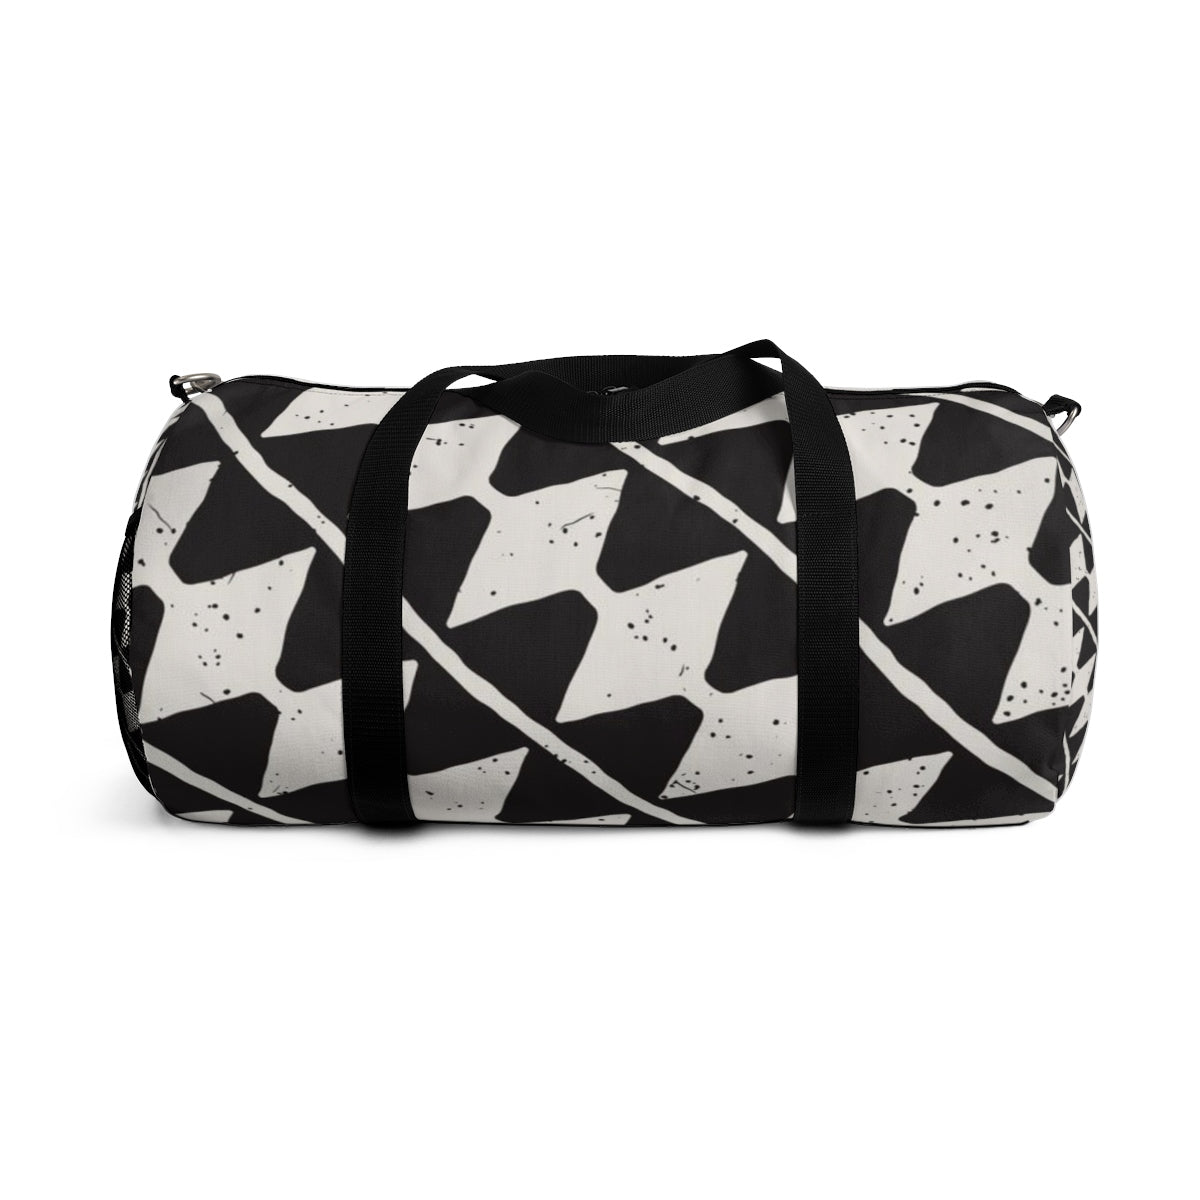 8e5d5a3ee1e5 Duffle Bag - Black   White Pattern - Sungate Gifts